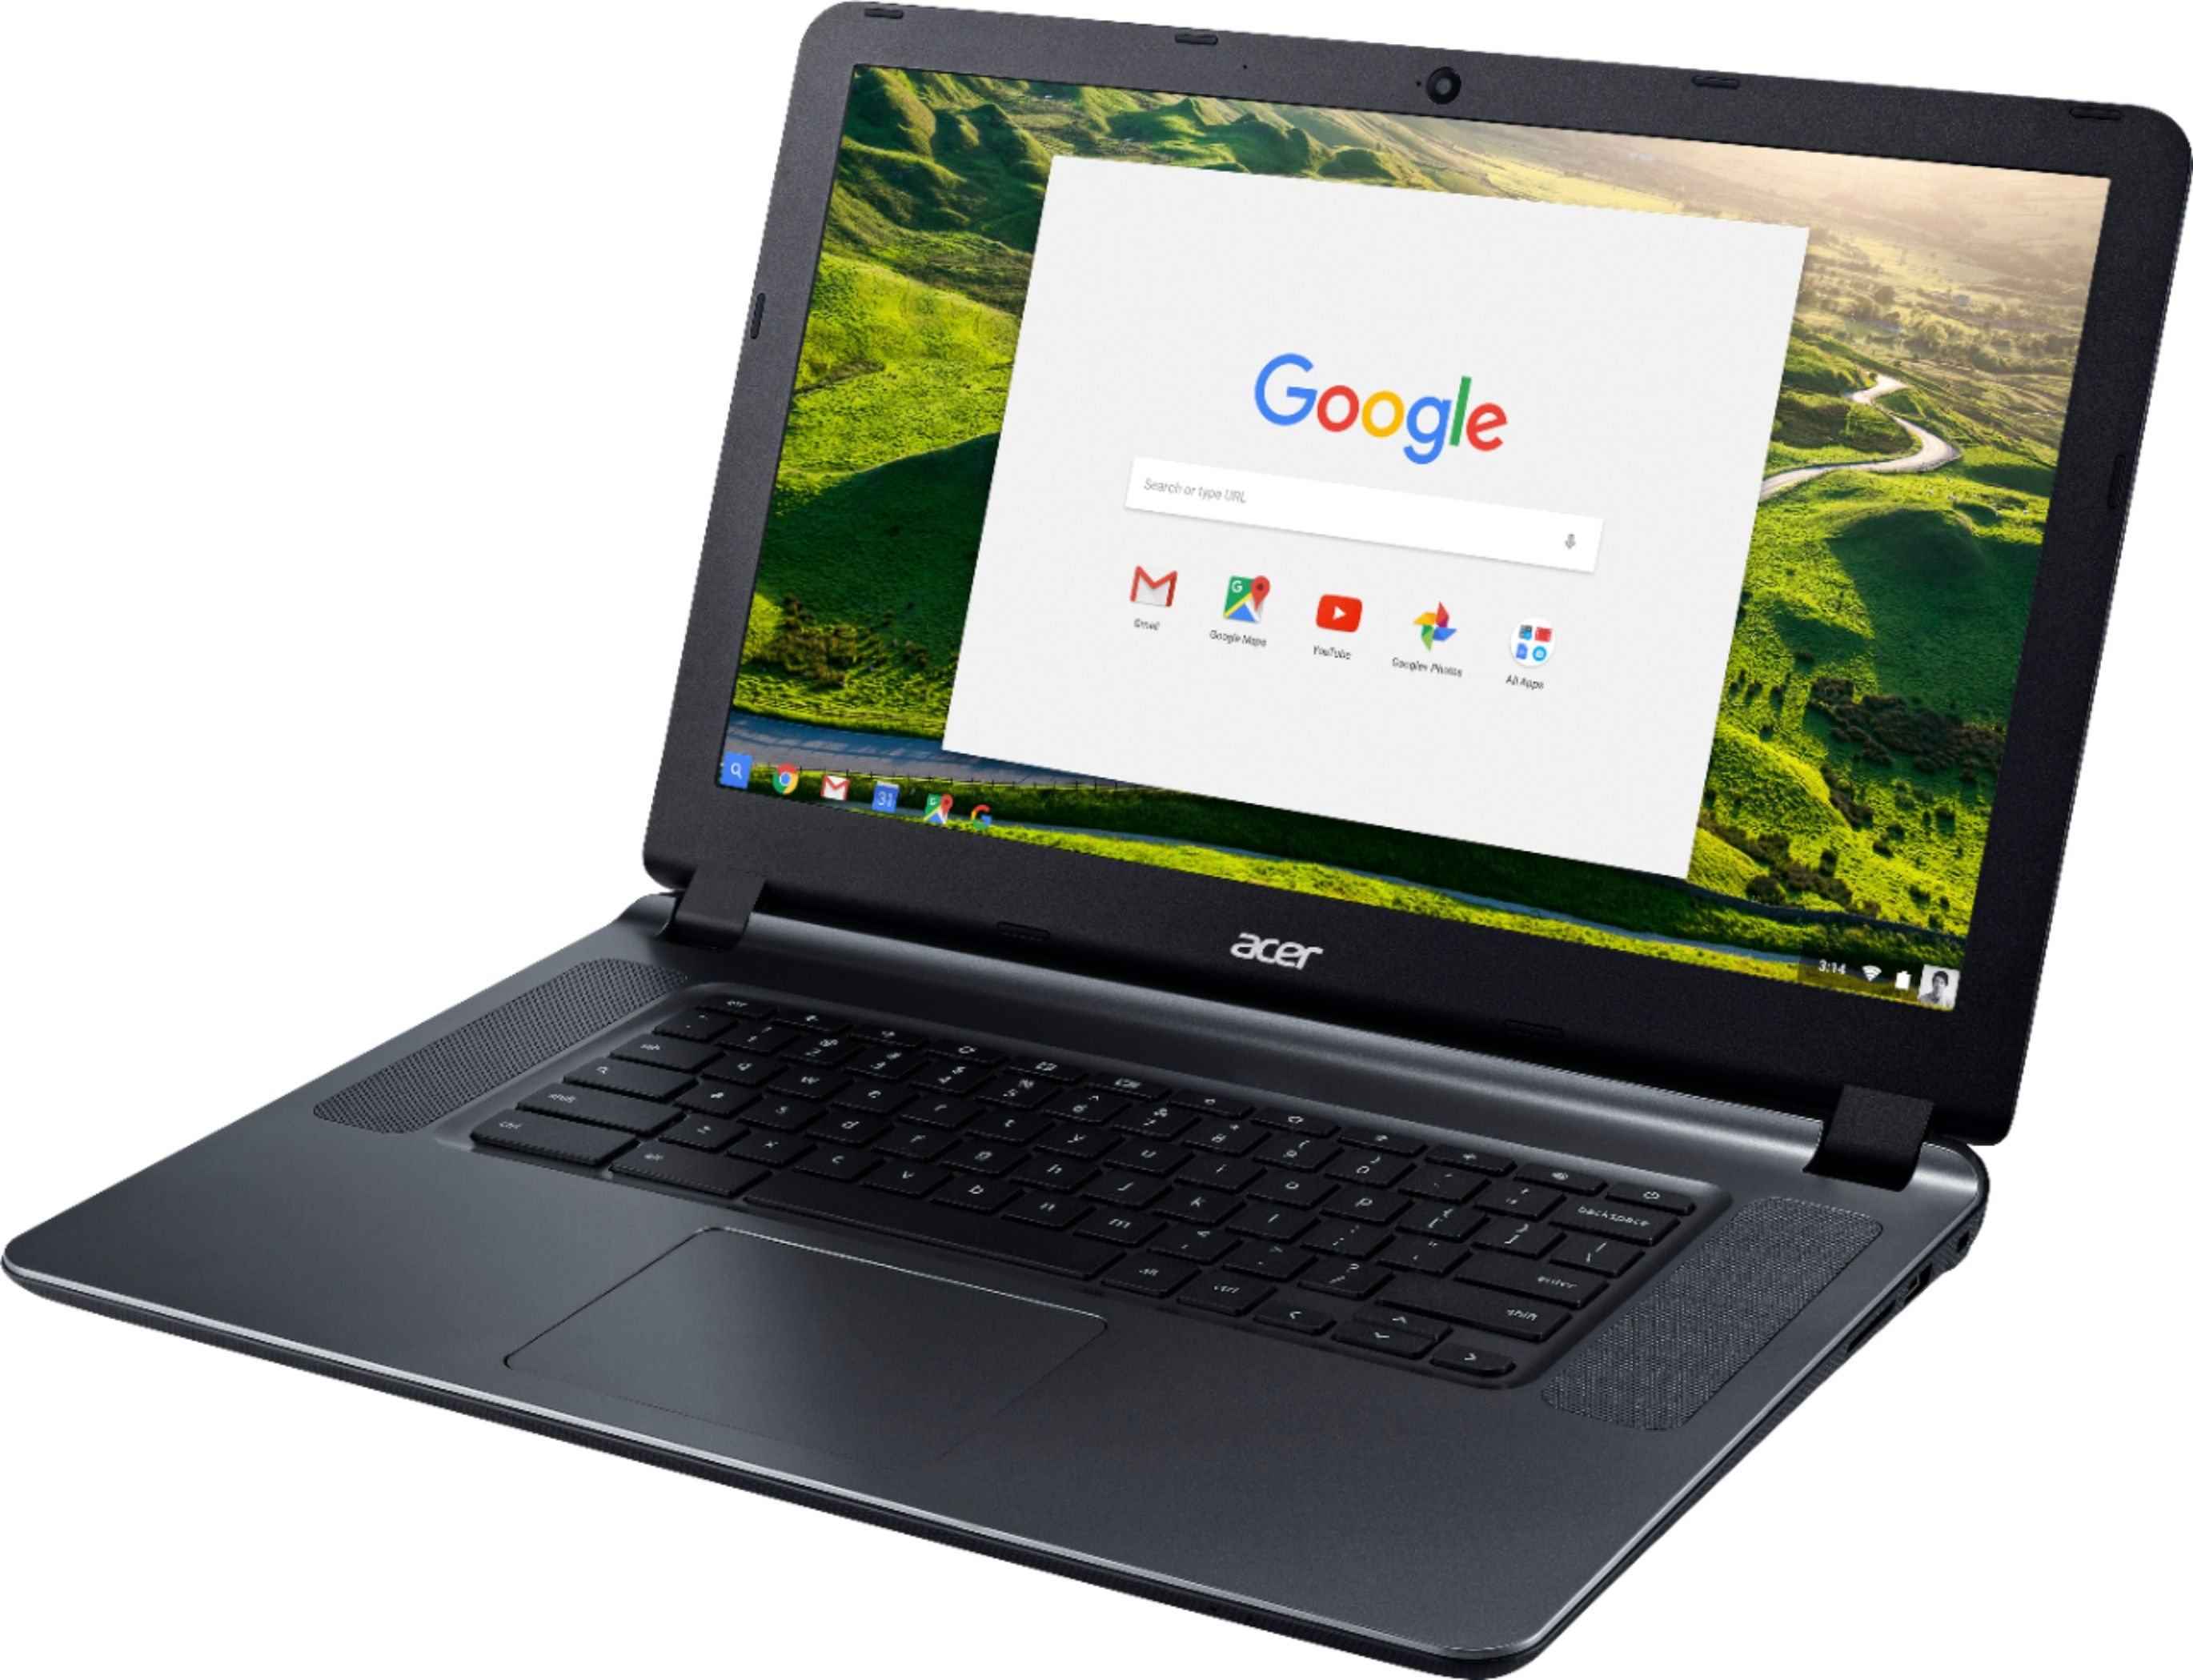 "Left Zoom. Acer - 15.6"" Chromebook - Intel Atom x5 - 4GB Memory - 16GB eMMC Flash Memory - Granite Gray."